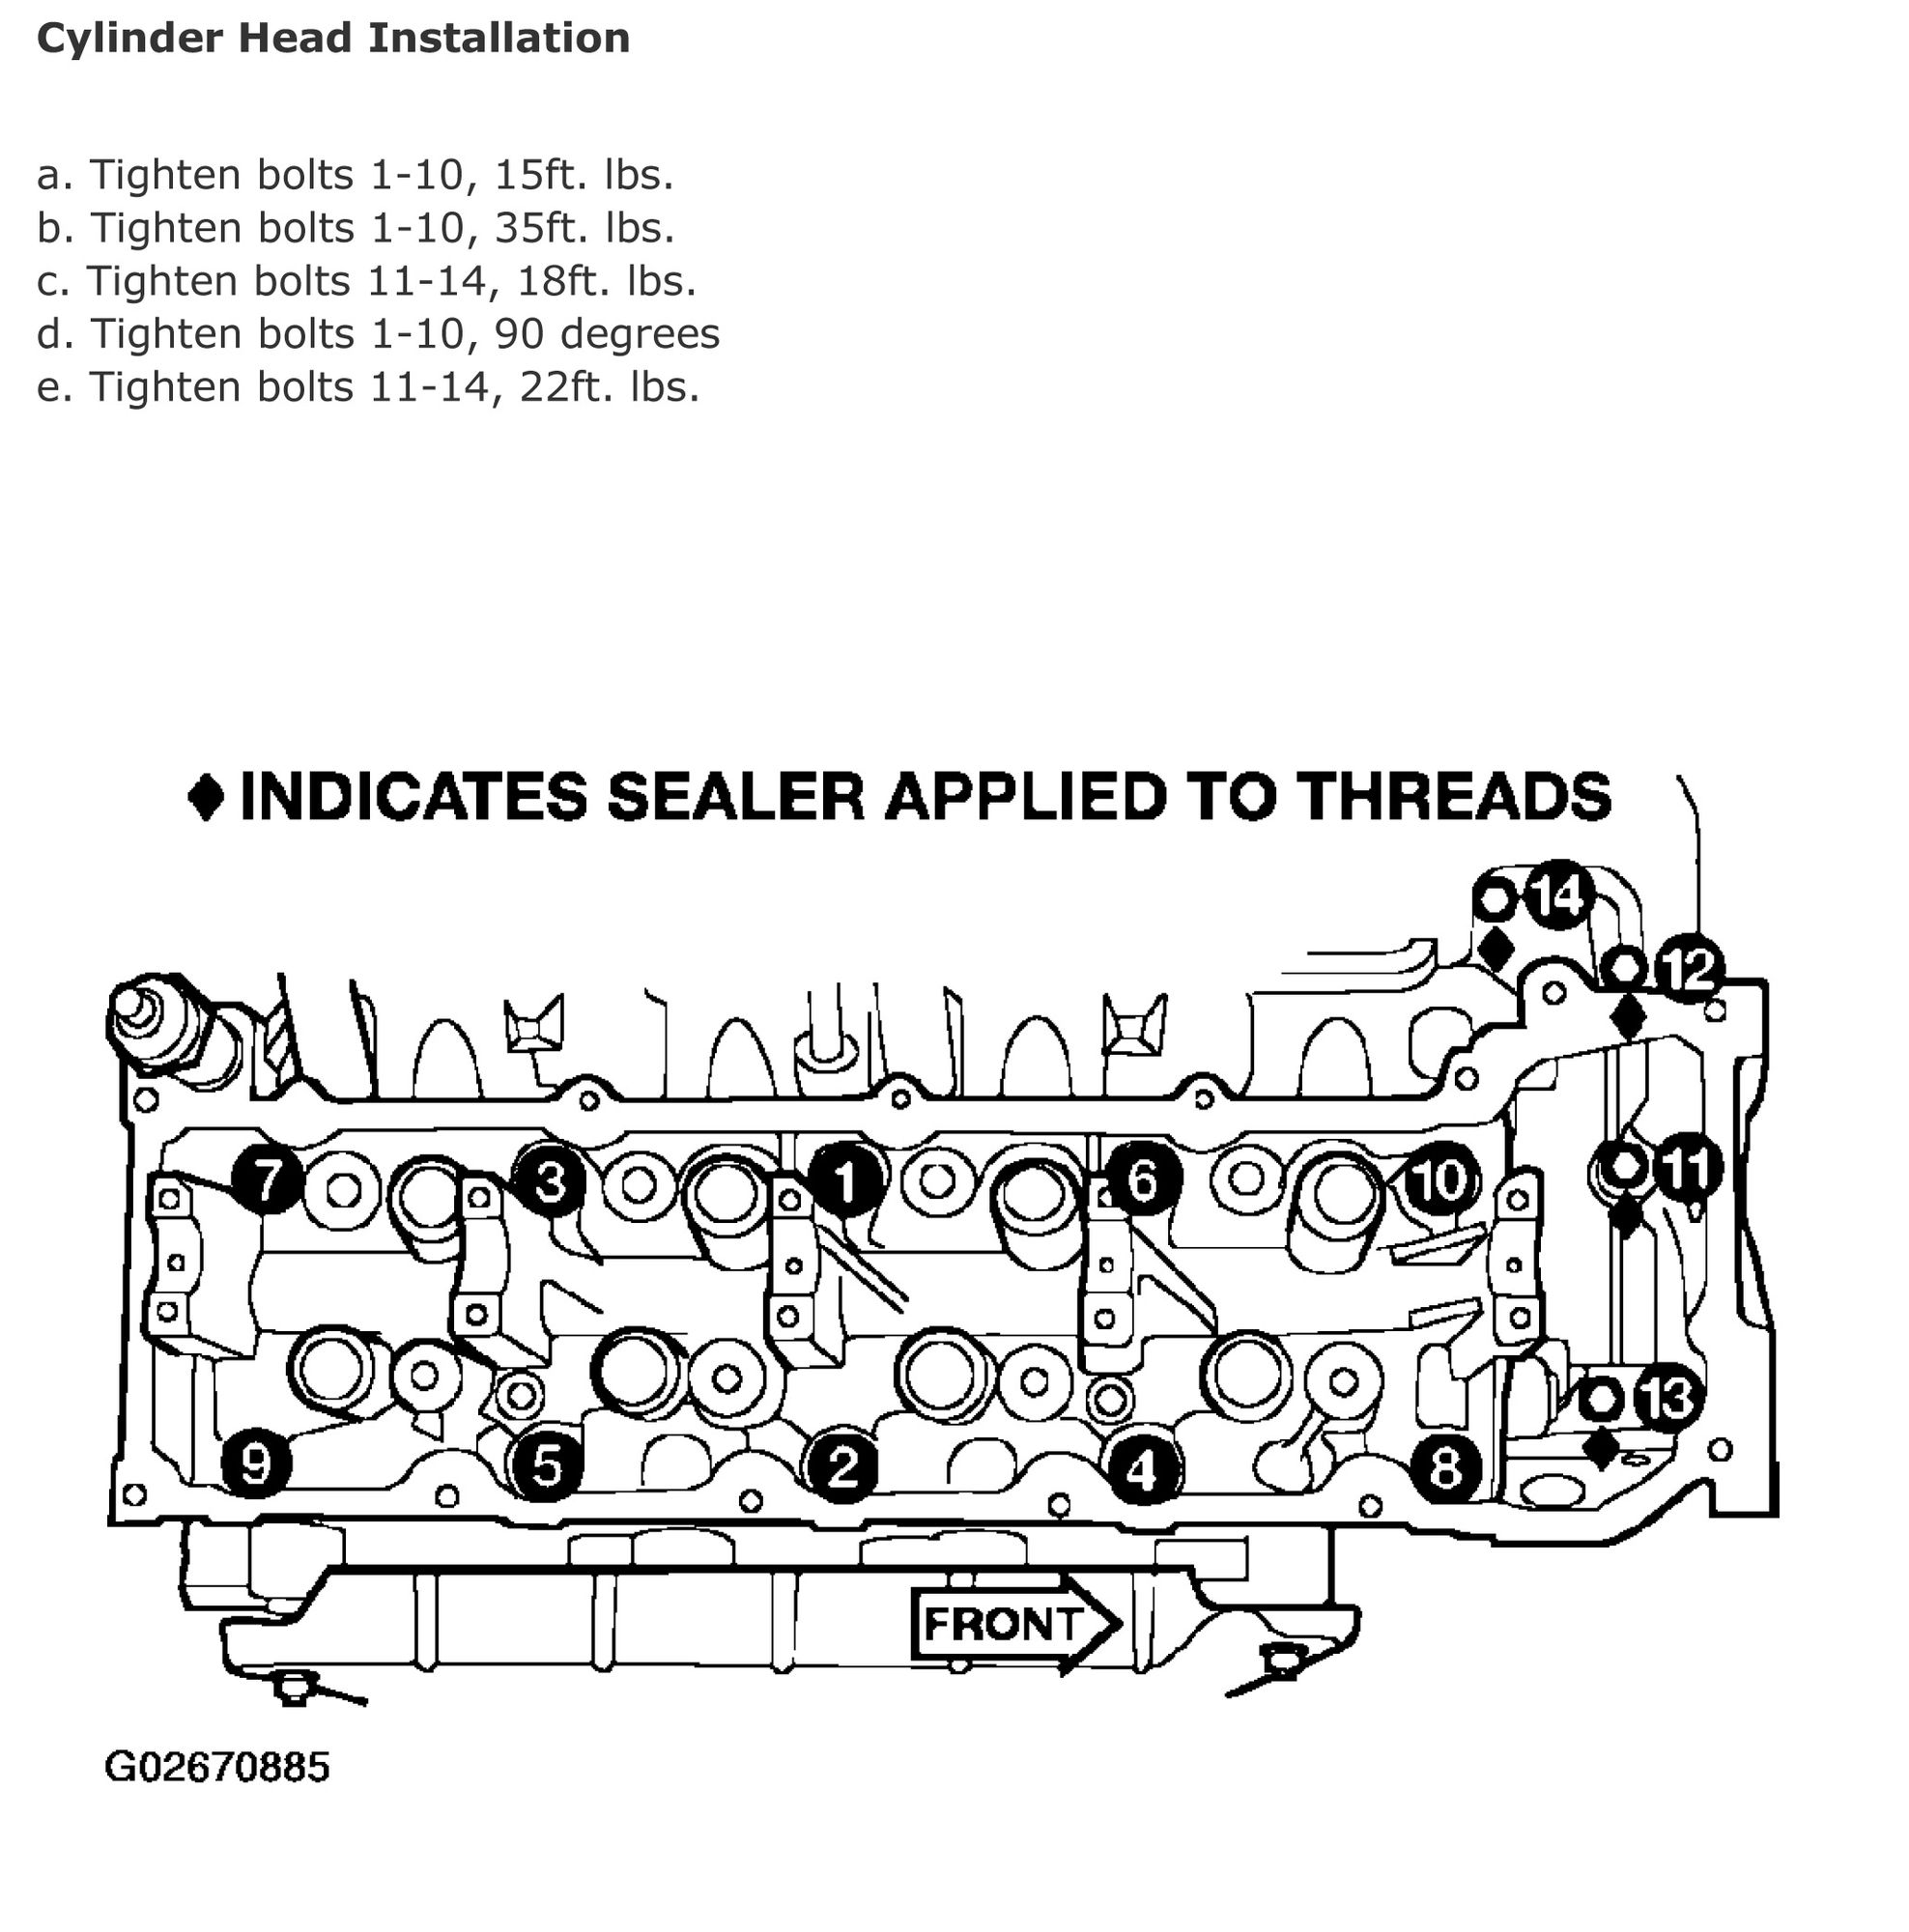 2004 Dodge Durango 4 7 Engine Diagram Dodge Caravan